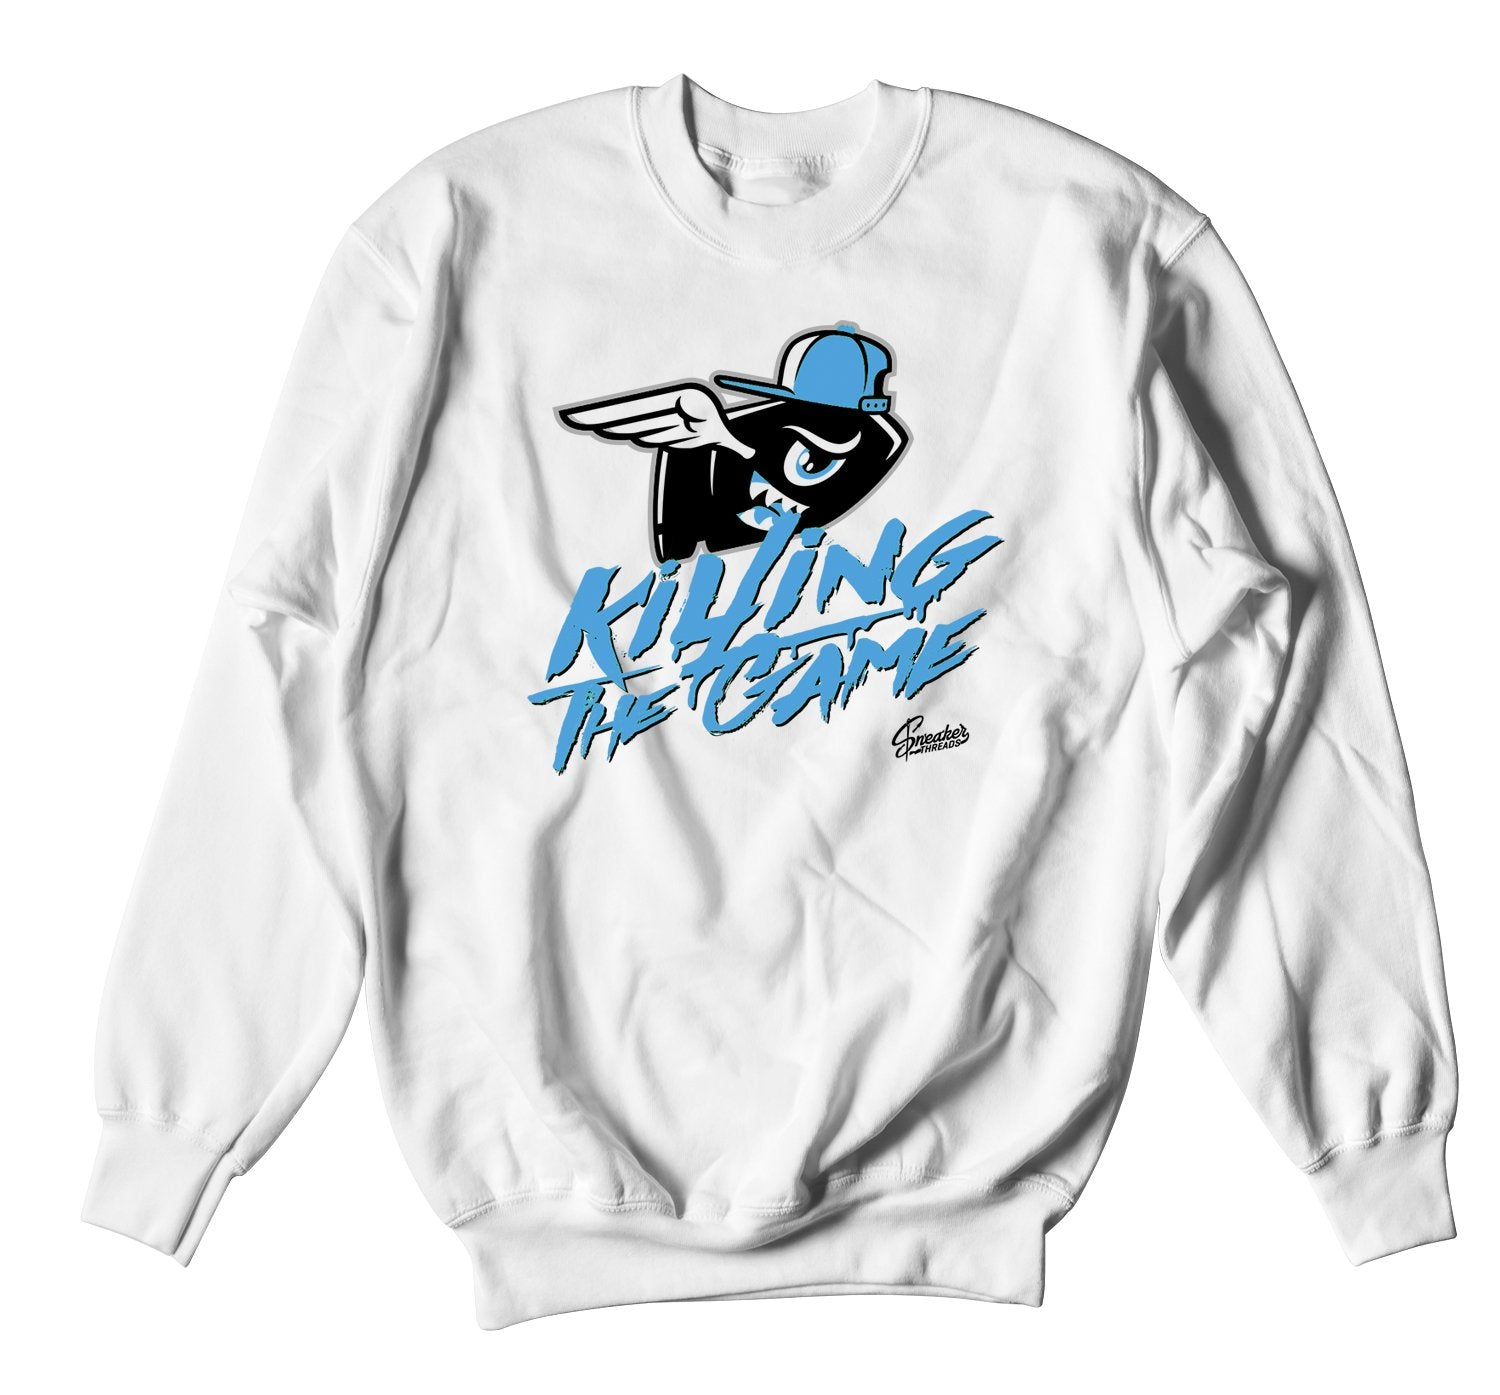 white crewneck sweater made to match perfectly with the Jordan 3 unc sneakers